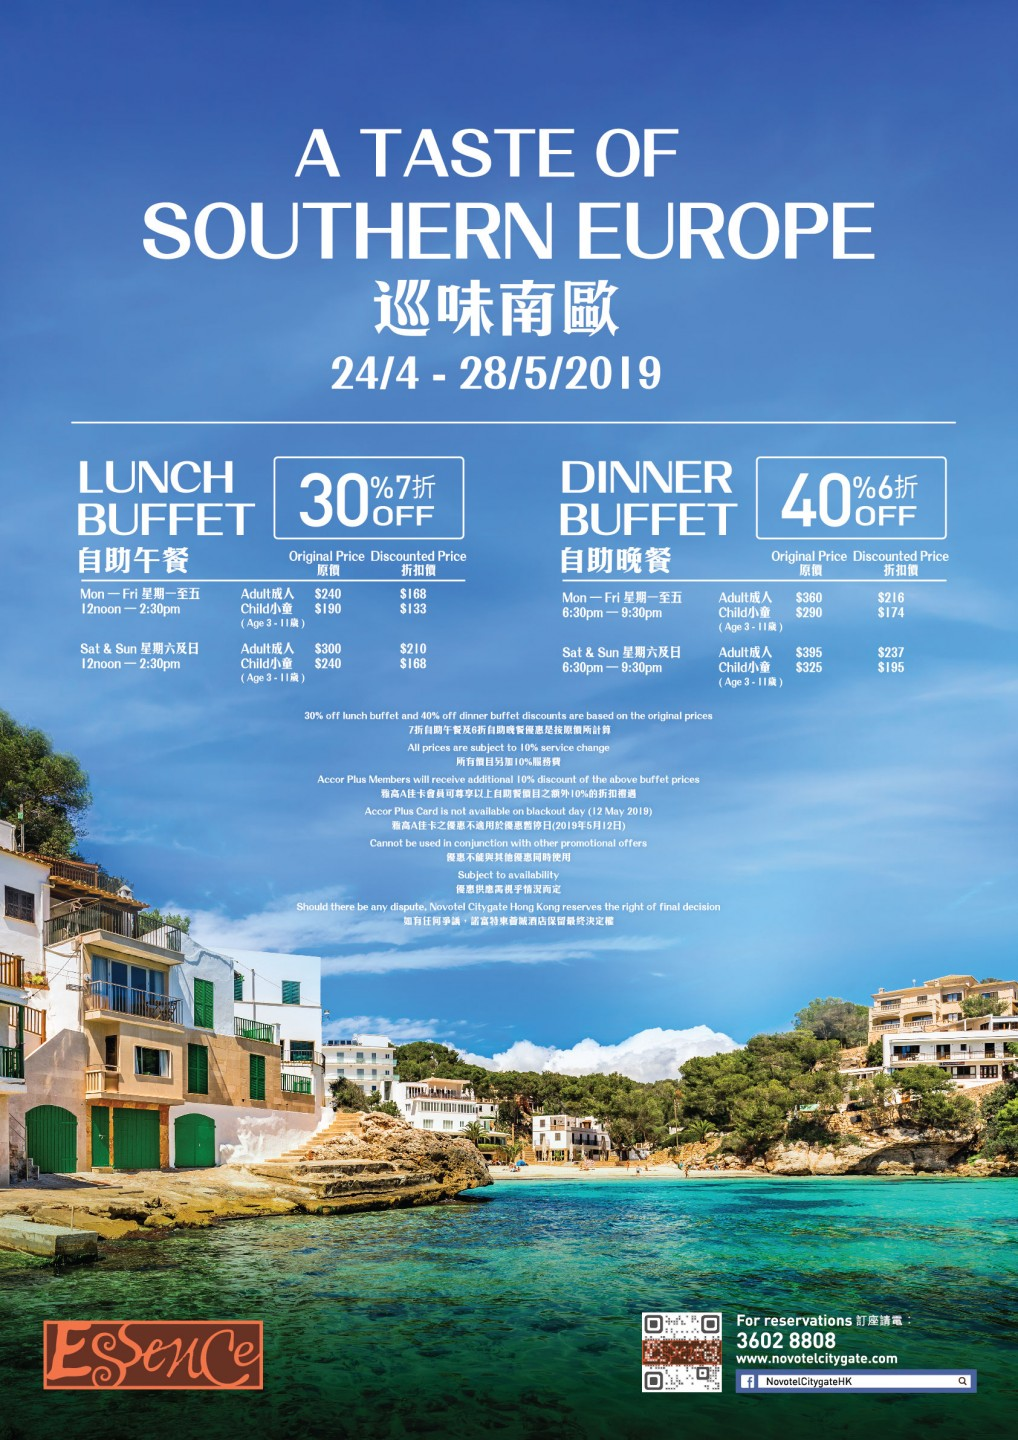 A Taste of Southern Europe Buffet at Novotel Citygate Hong Kong in Tung Chung